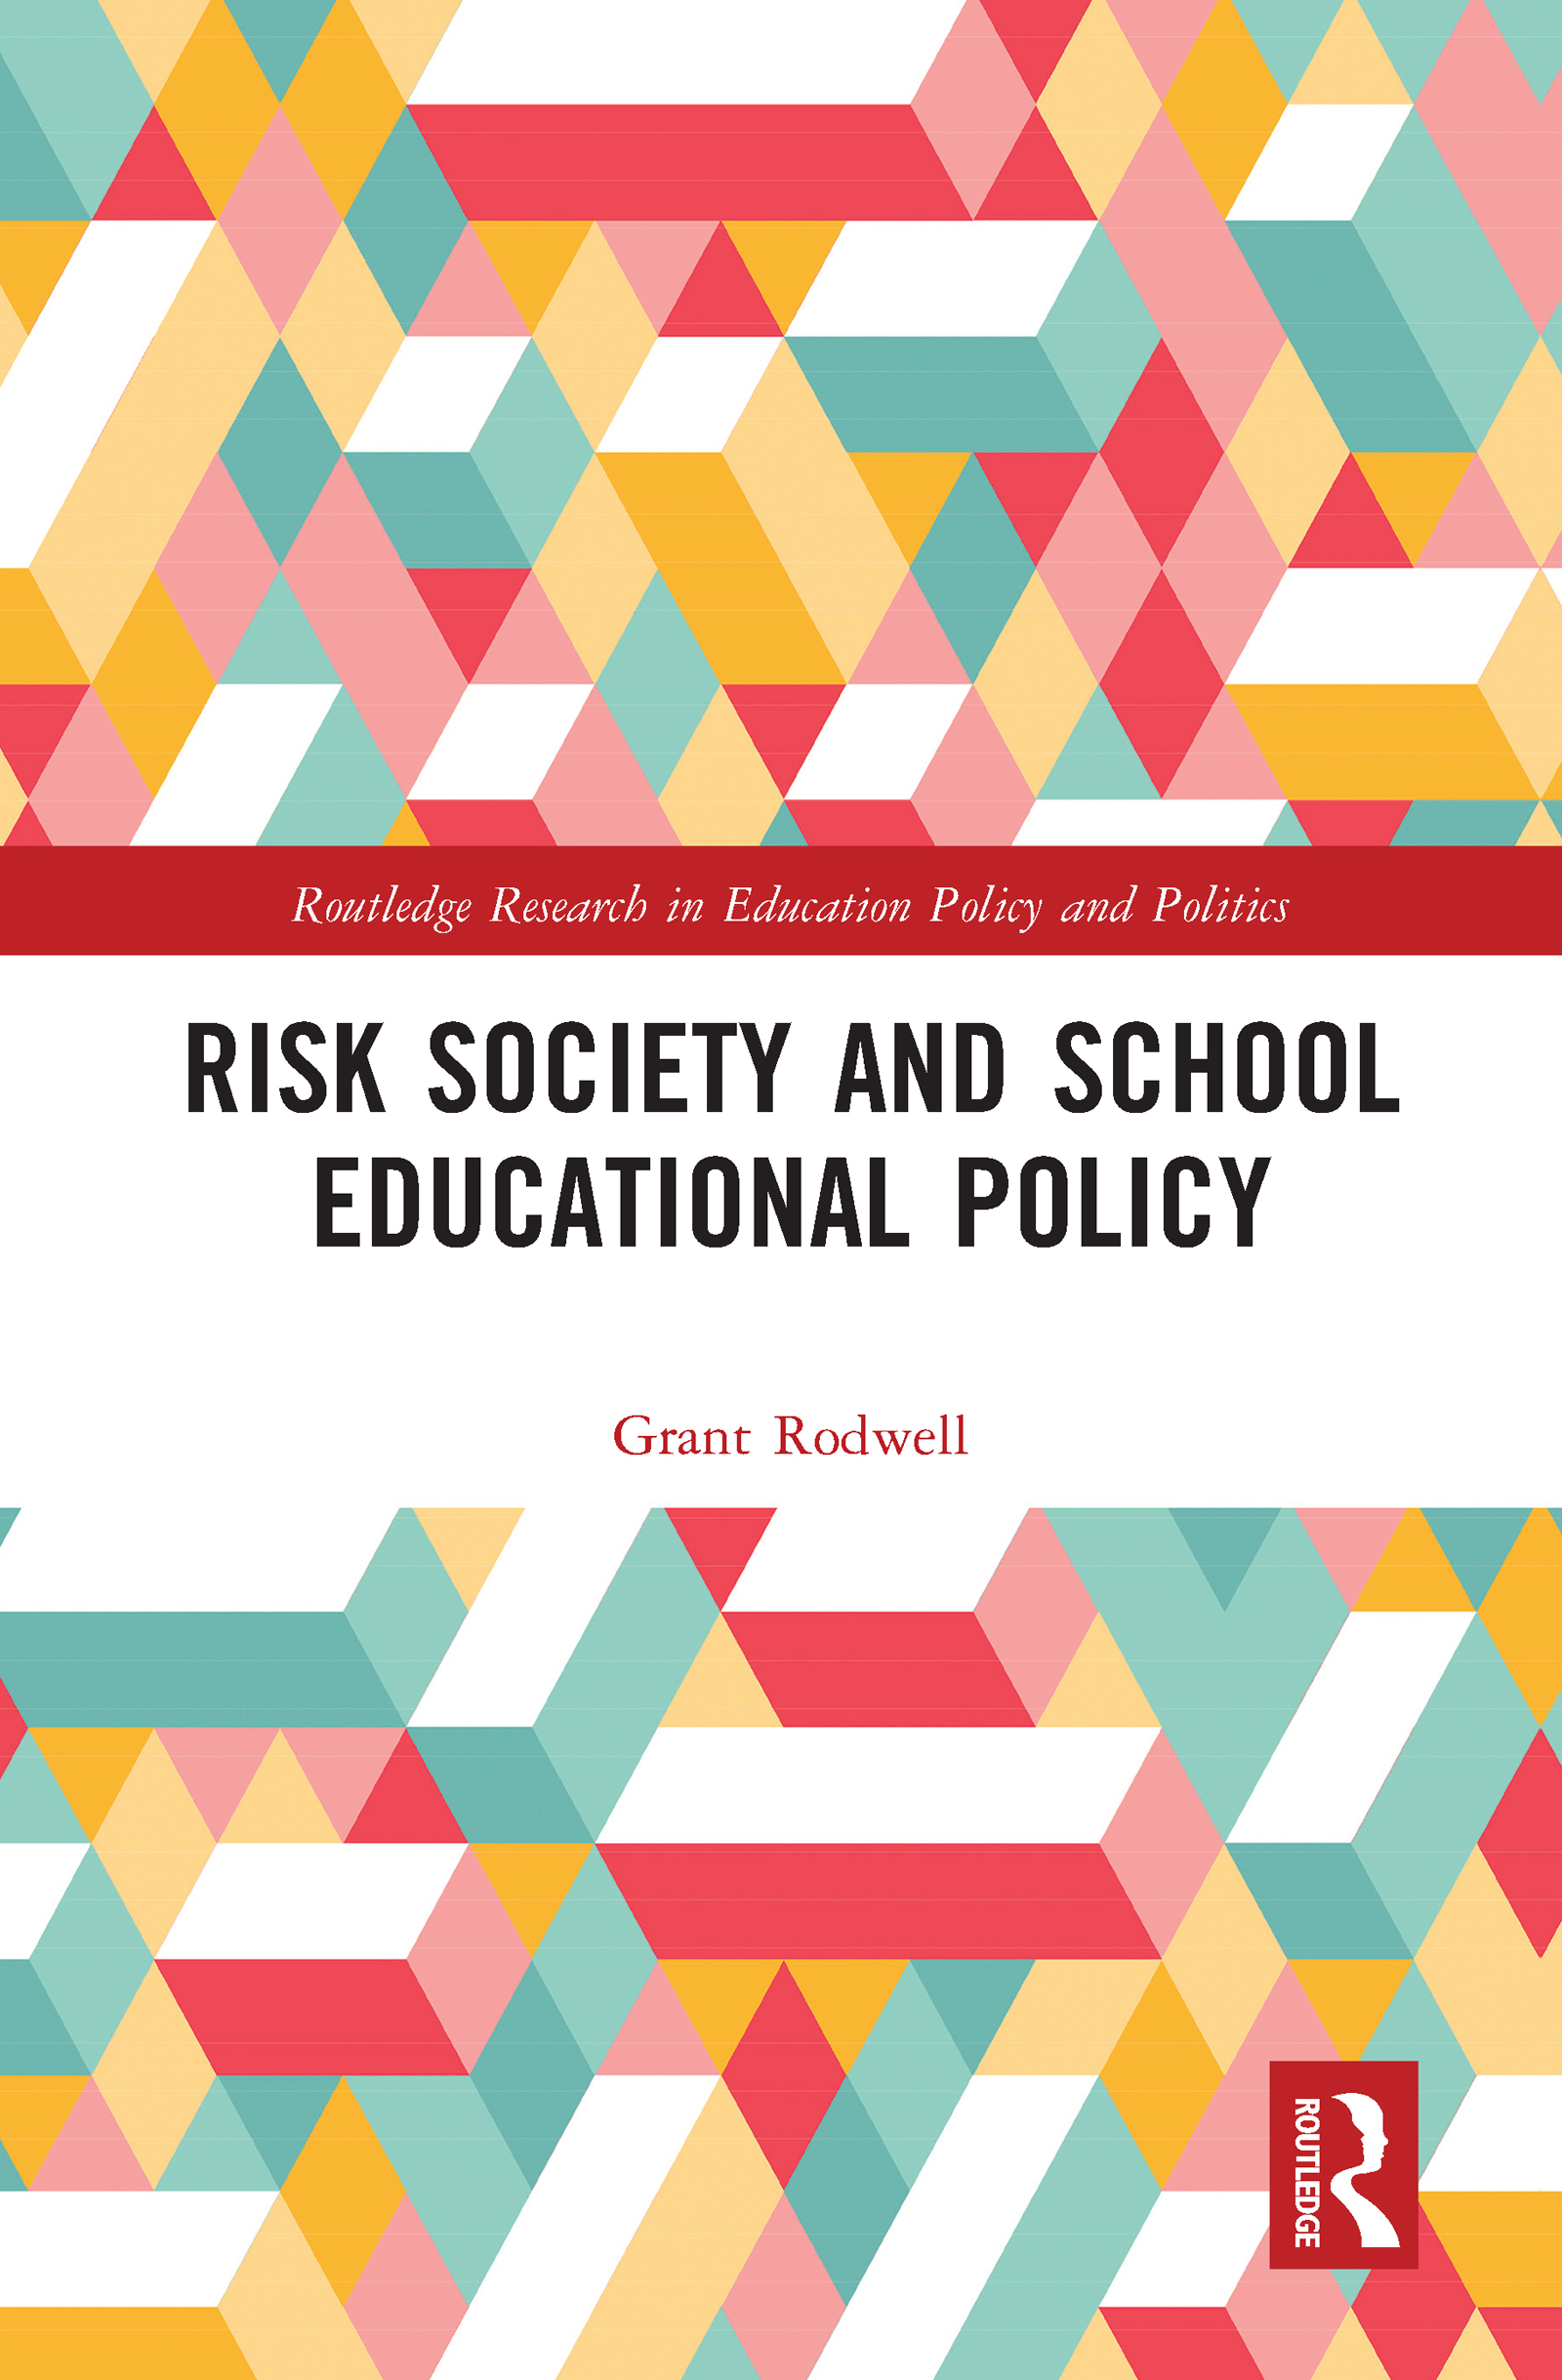 Risk Society and School Educational Policy